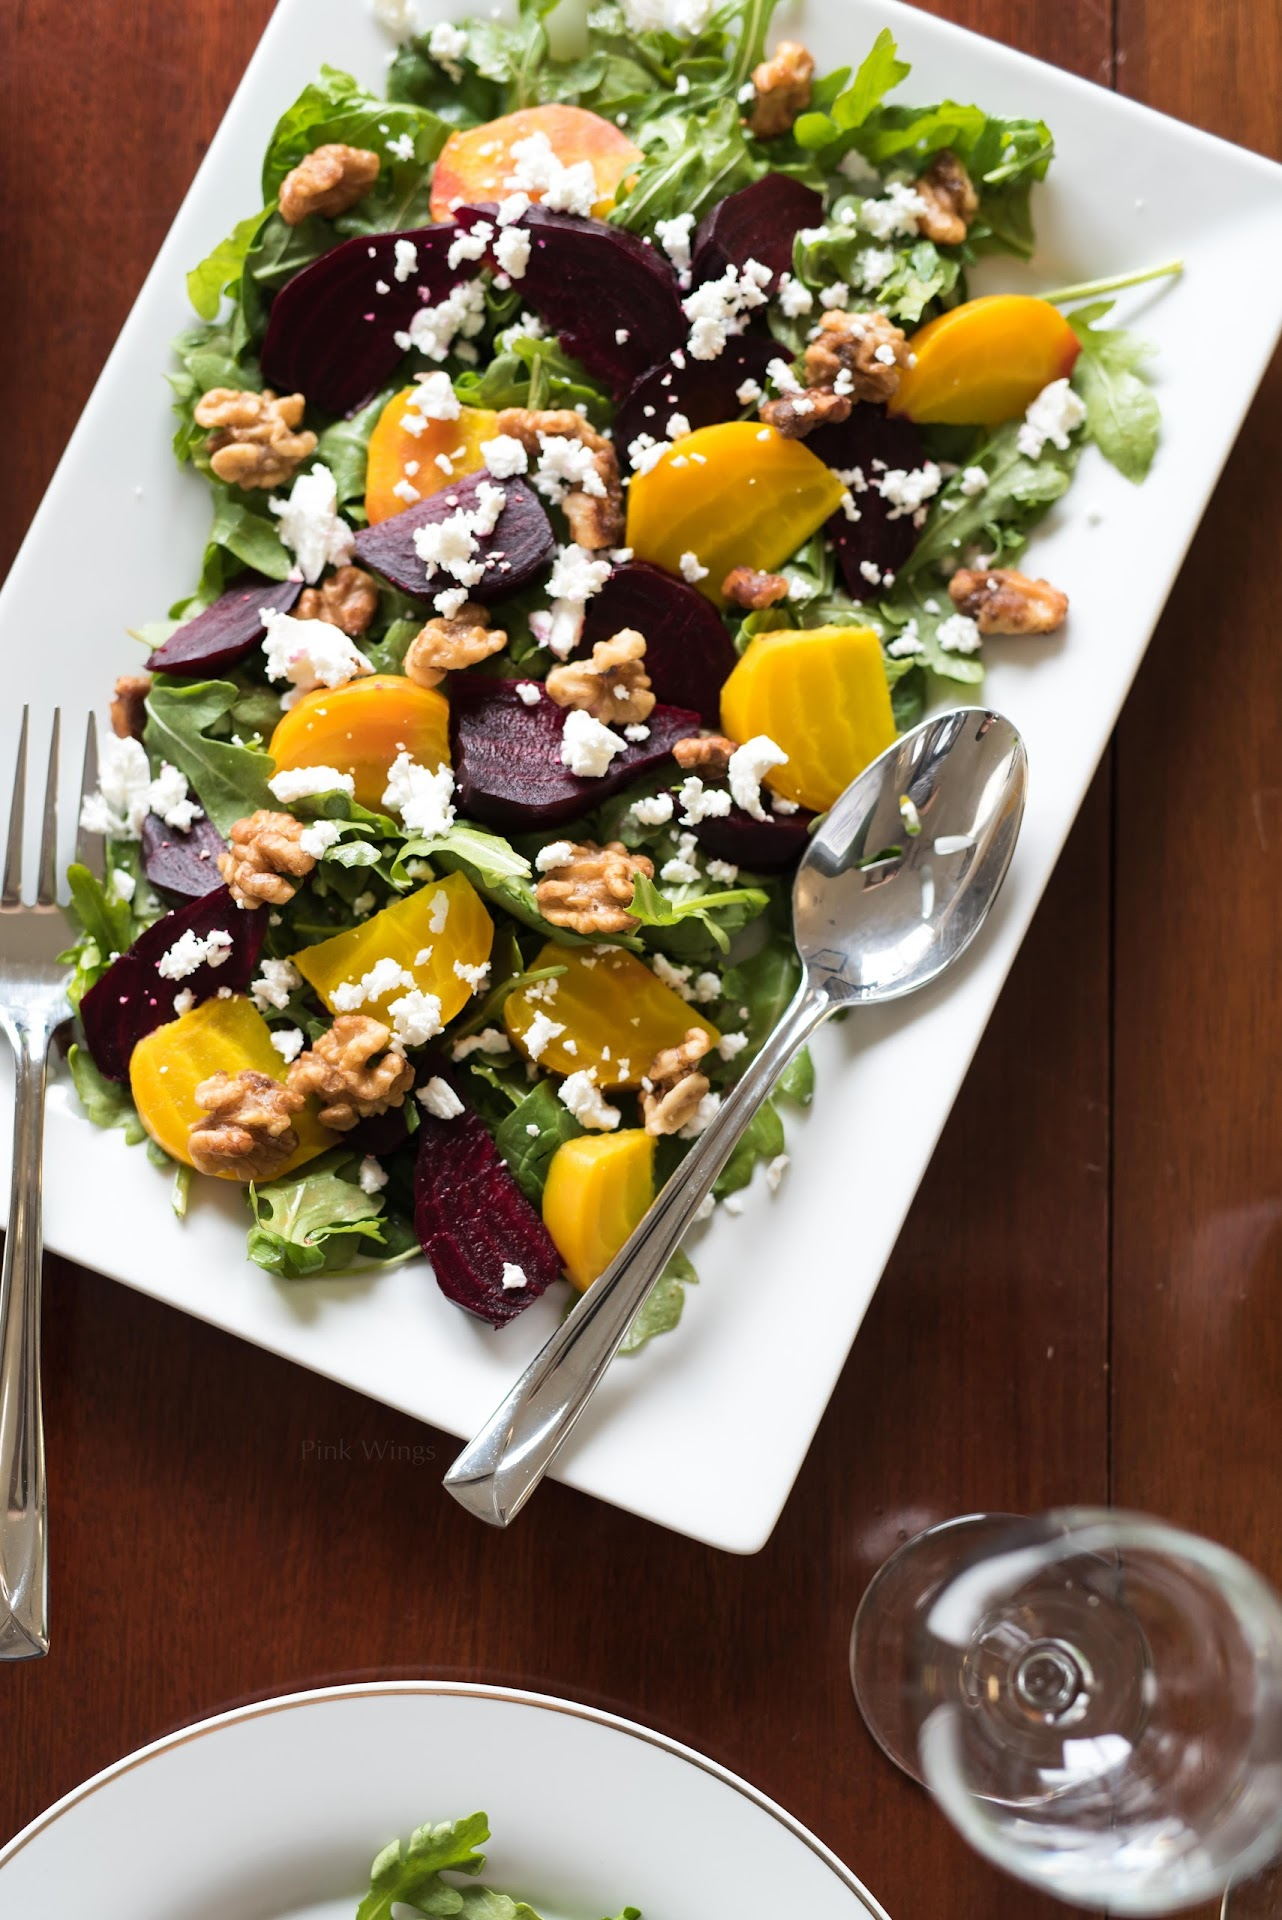 beet salad recipe, beet recipe, colorful salad, goat cheese recipe, best salad recipes, summer salad, salad recipe for a dinner party, party salad, adult party recipe ideas, dinner party recipe ideas, arugula